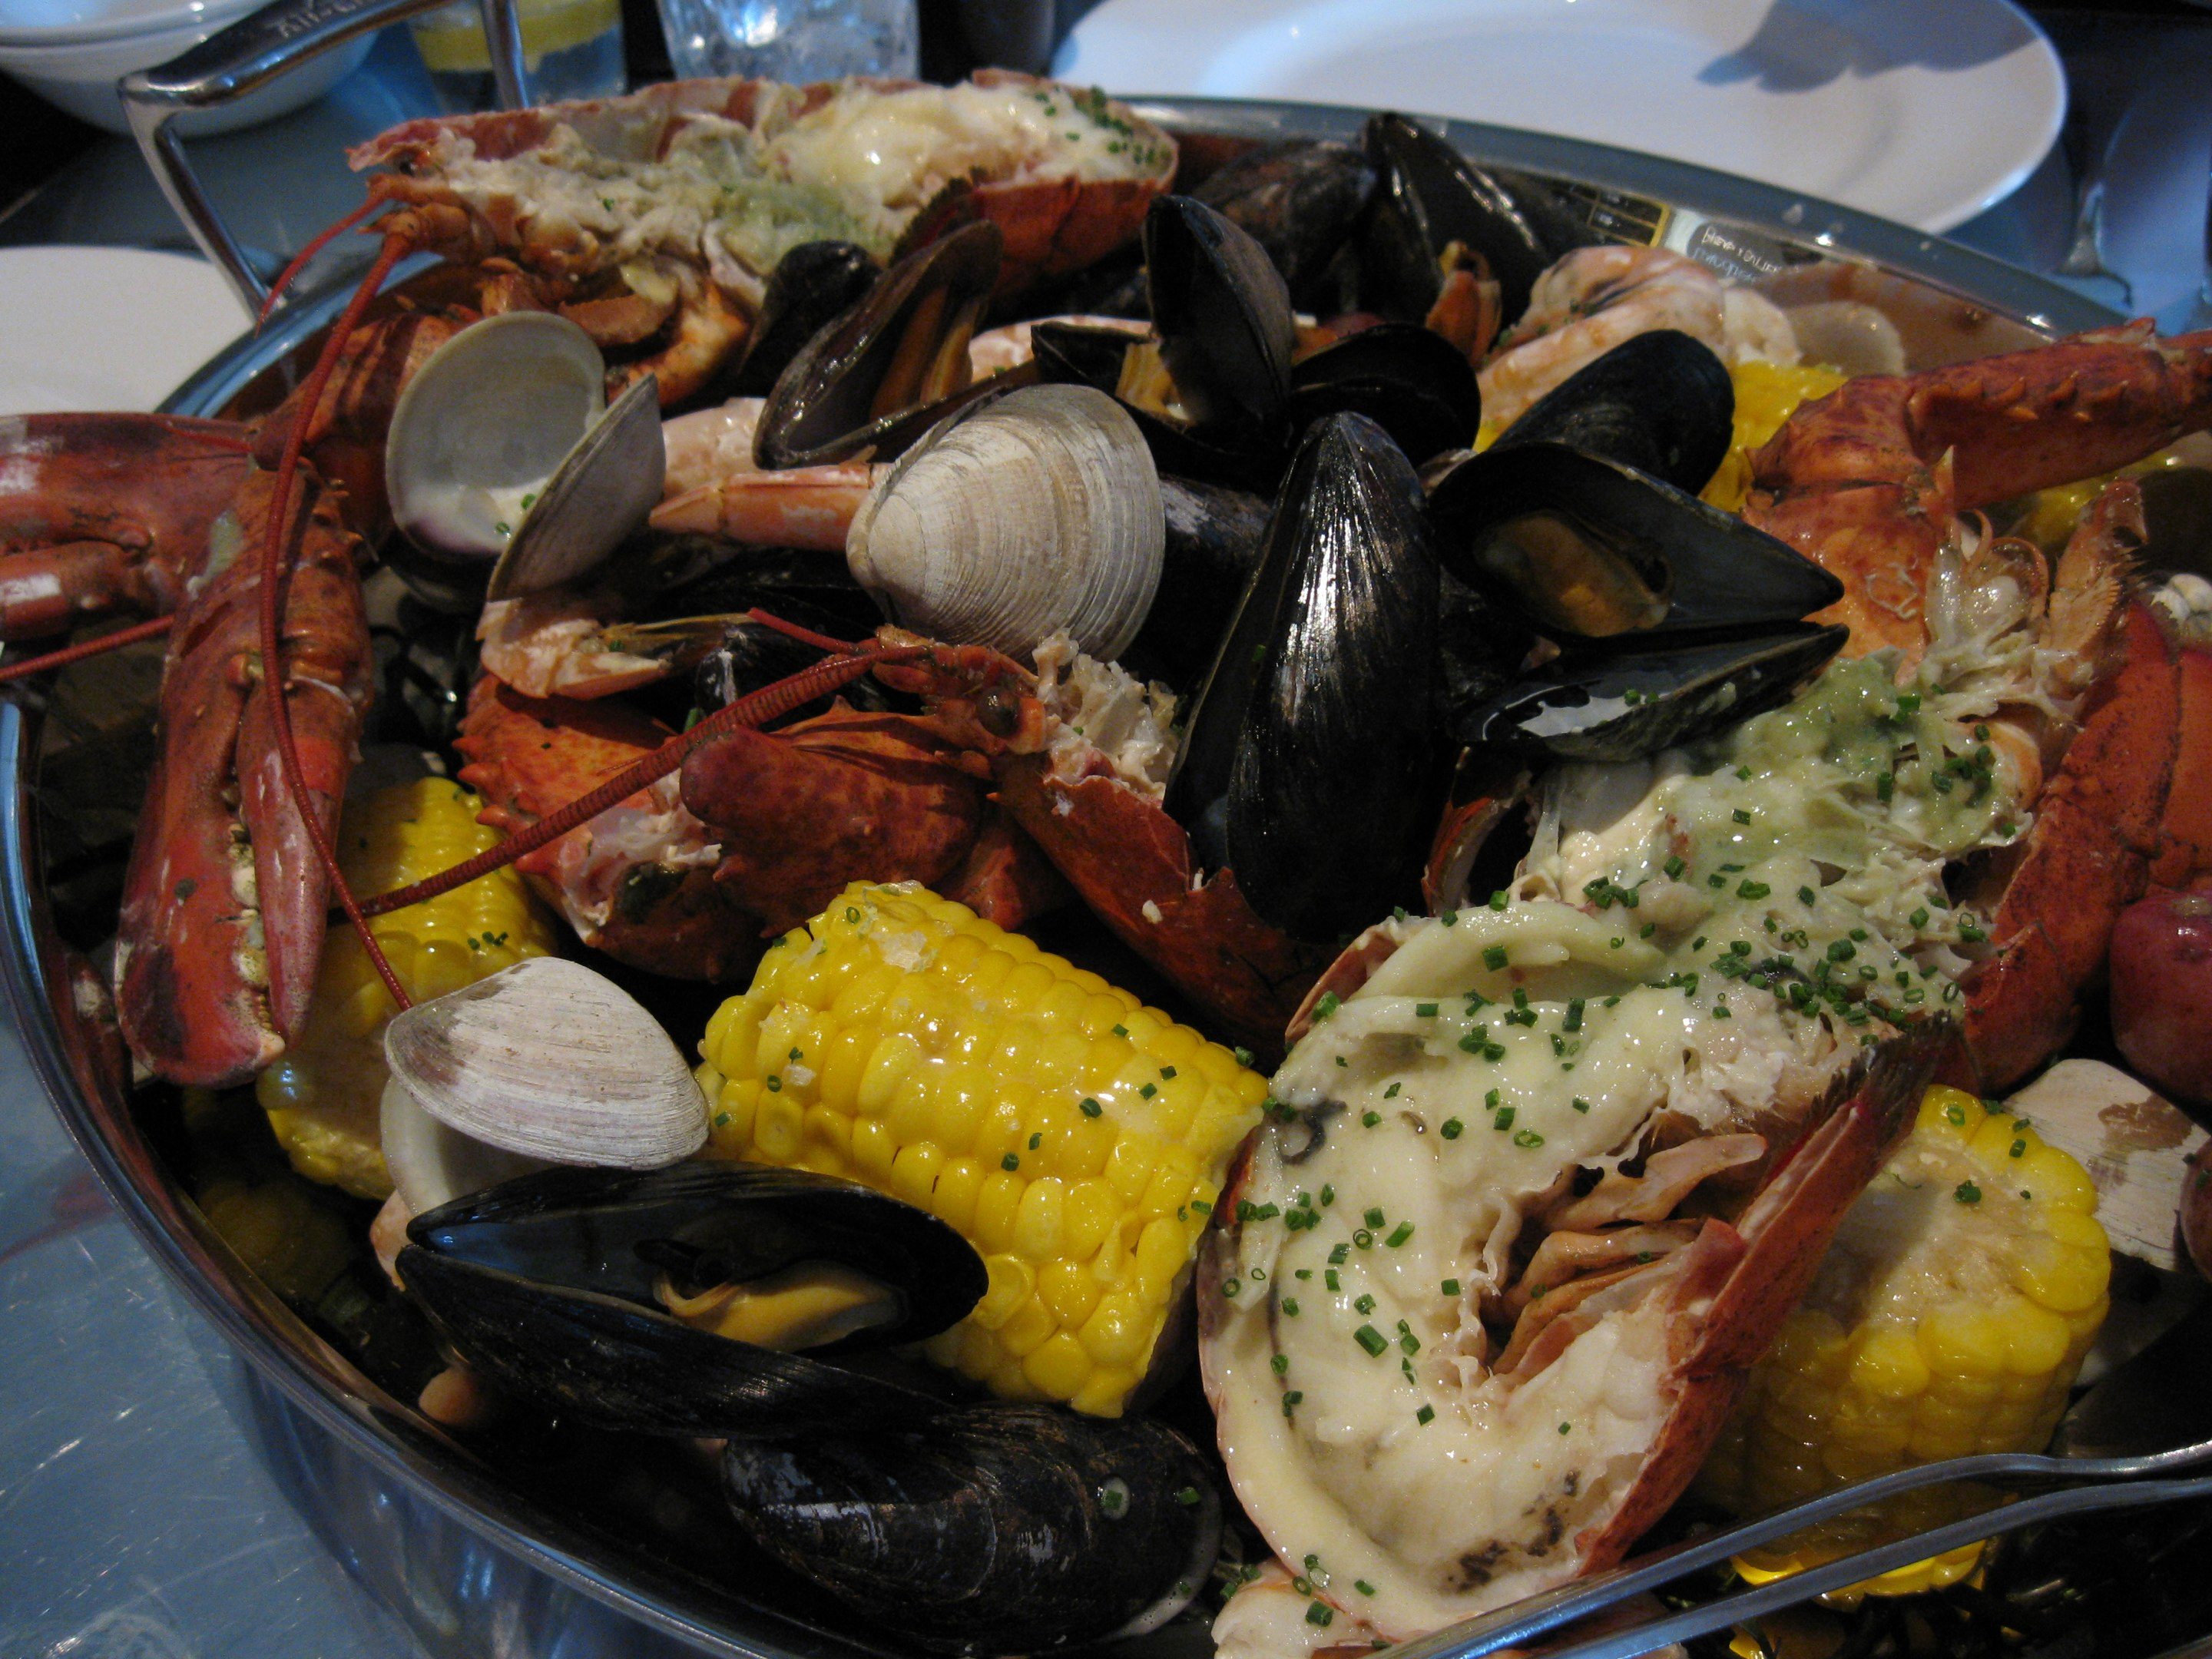 File:New England clam bake.jpg - Wikimedia Commons